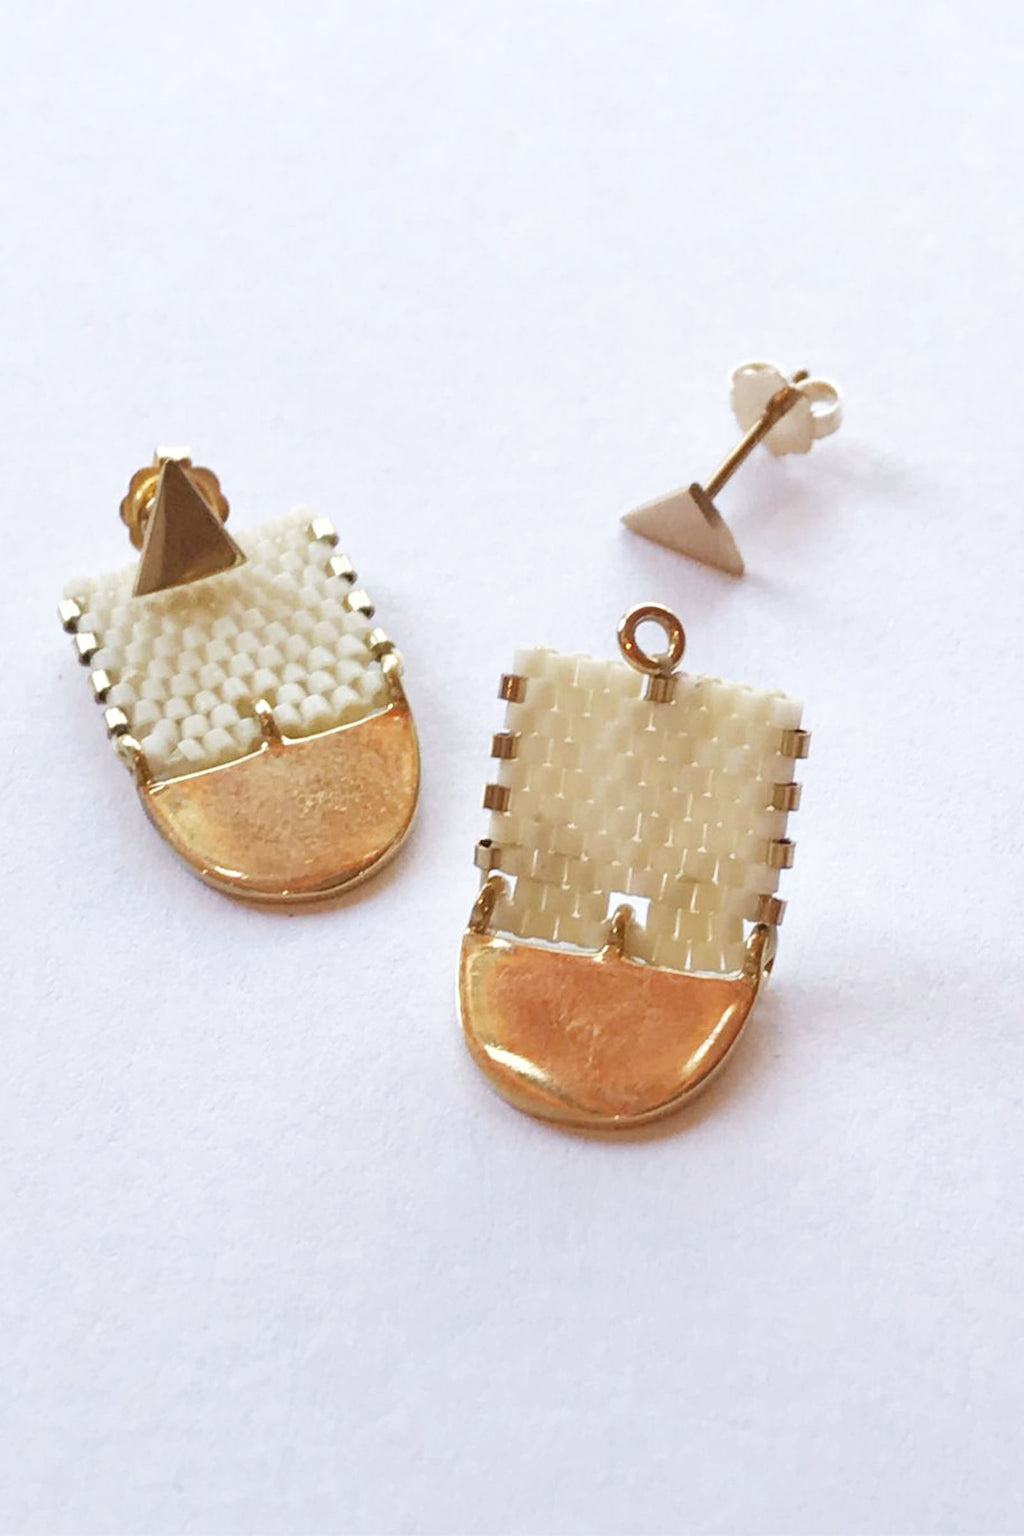 ILD Milk and Honey Moon Short Earrings in Bone with 10K Gold Stud